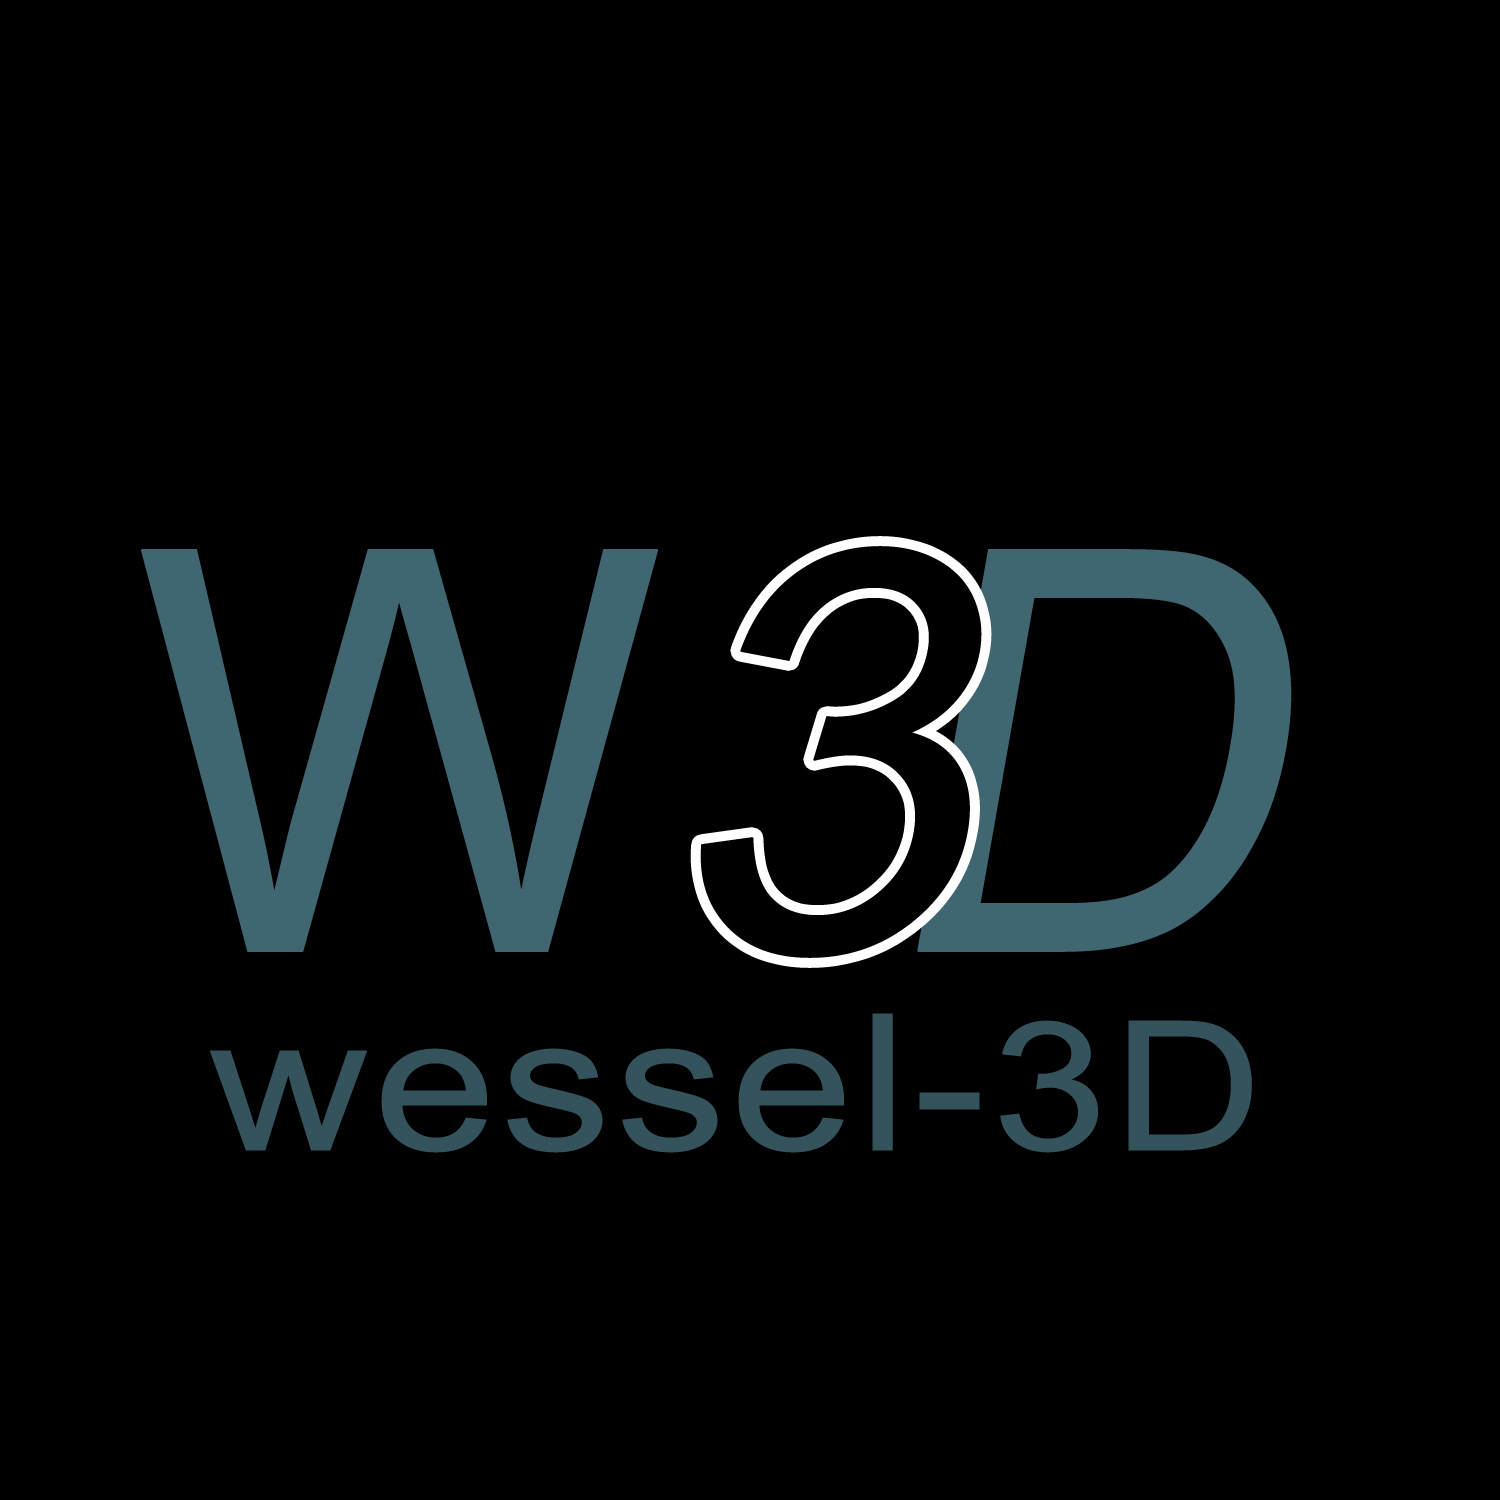 Wessel-3D